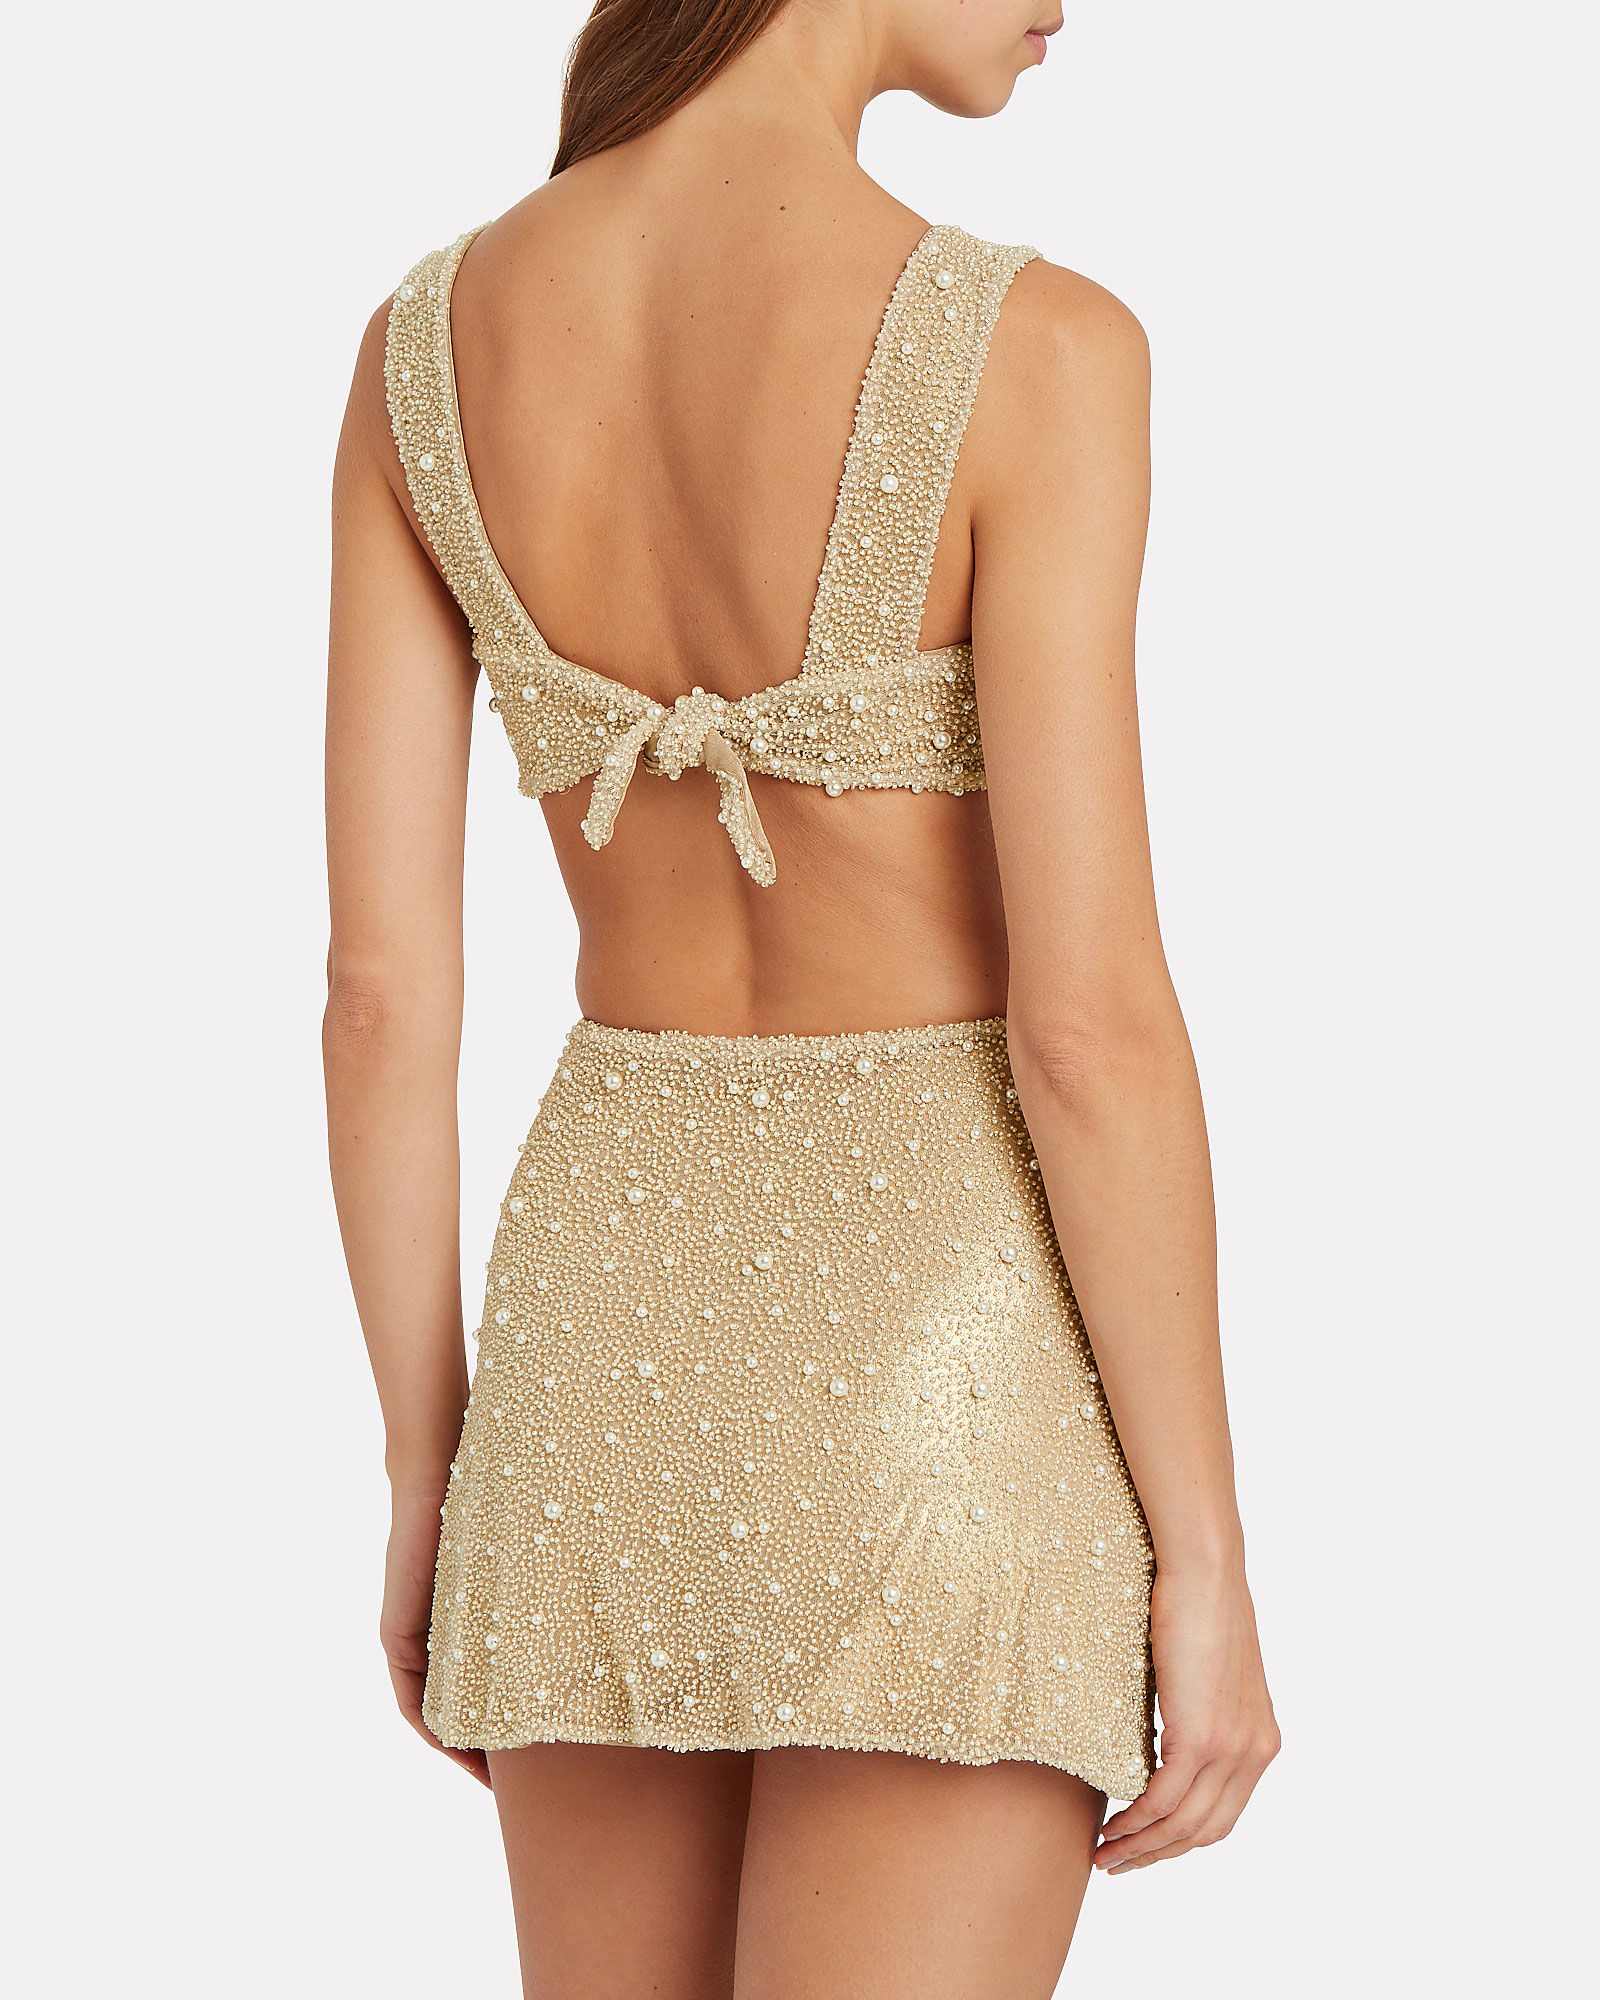 Mare Beaded Crop Top, GOLD, hi-res